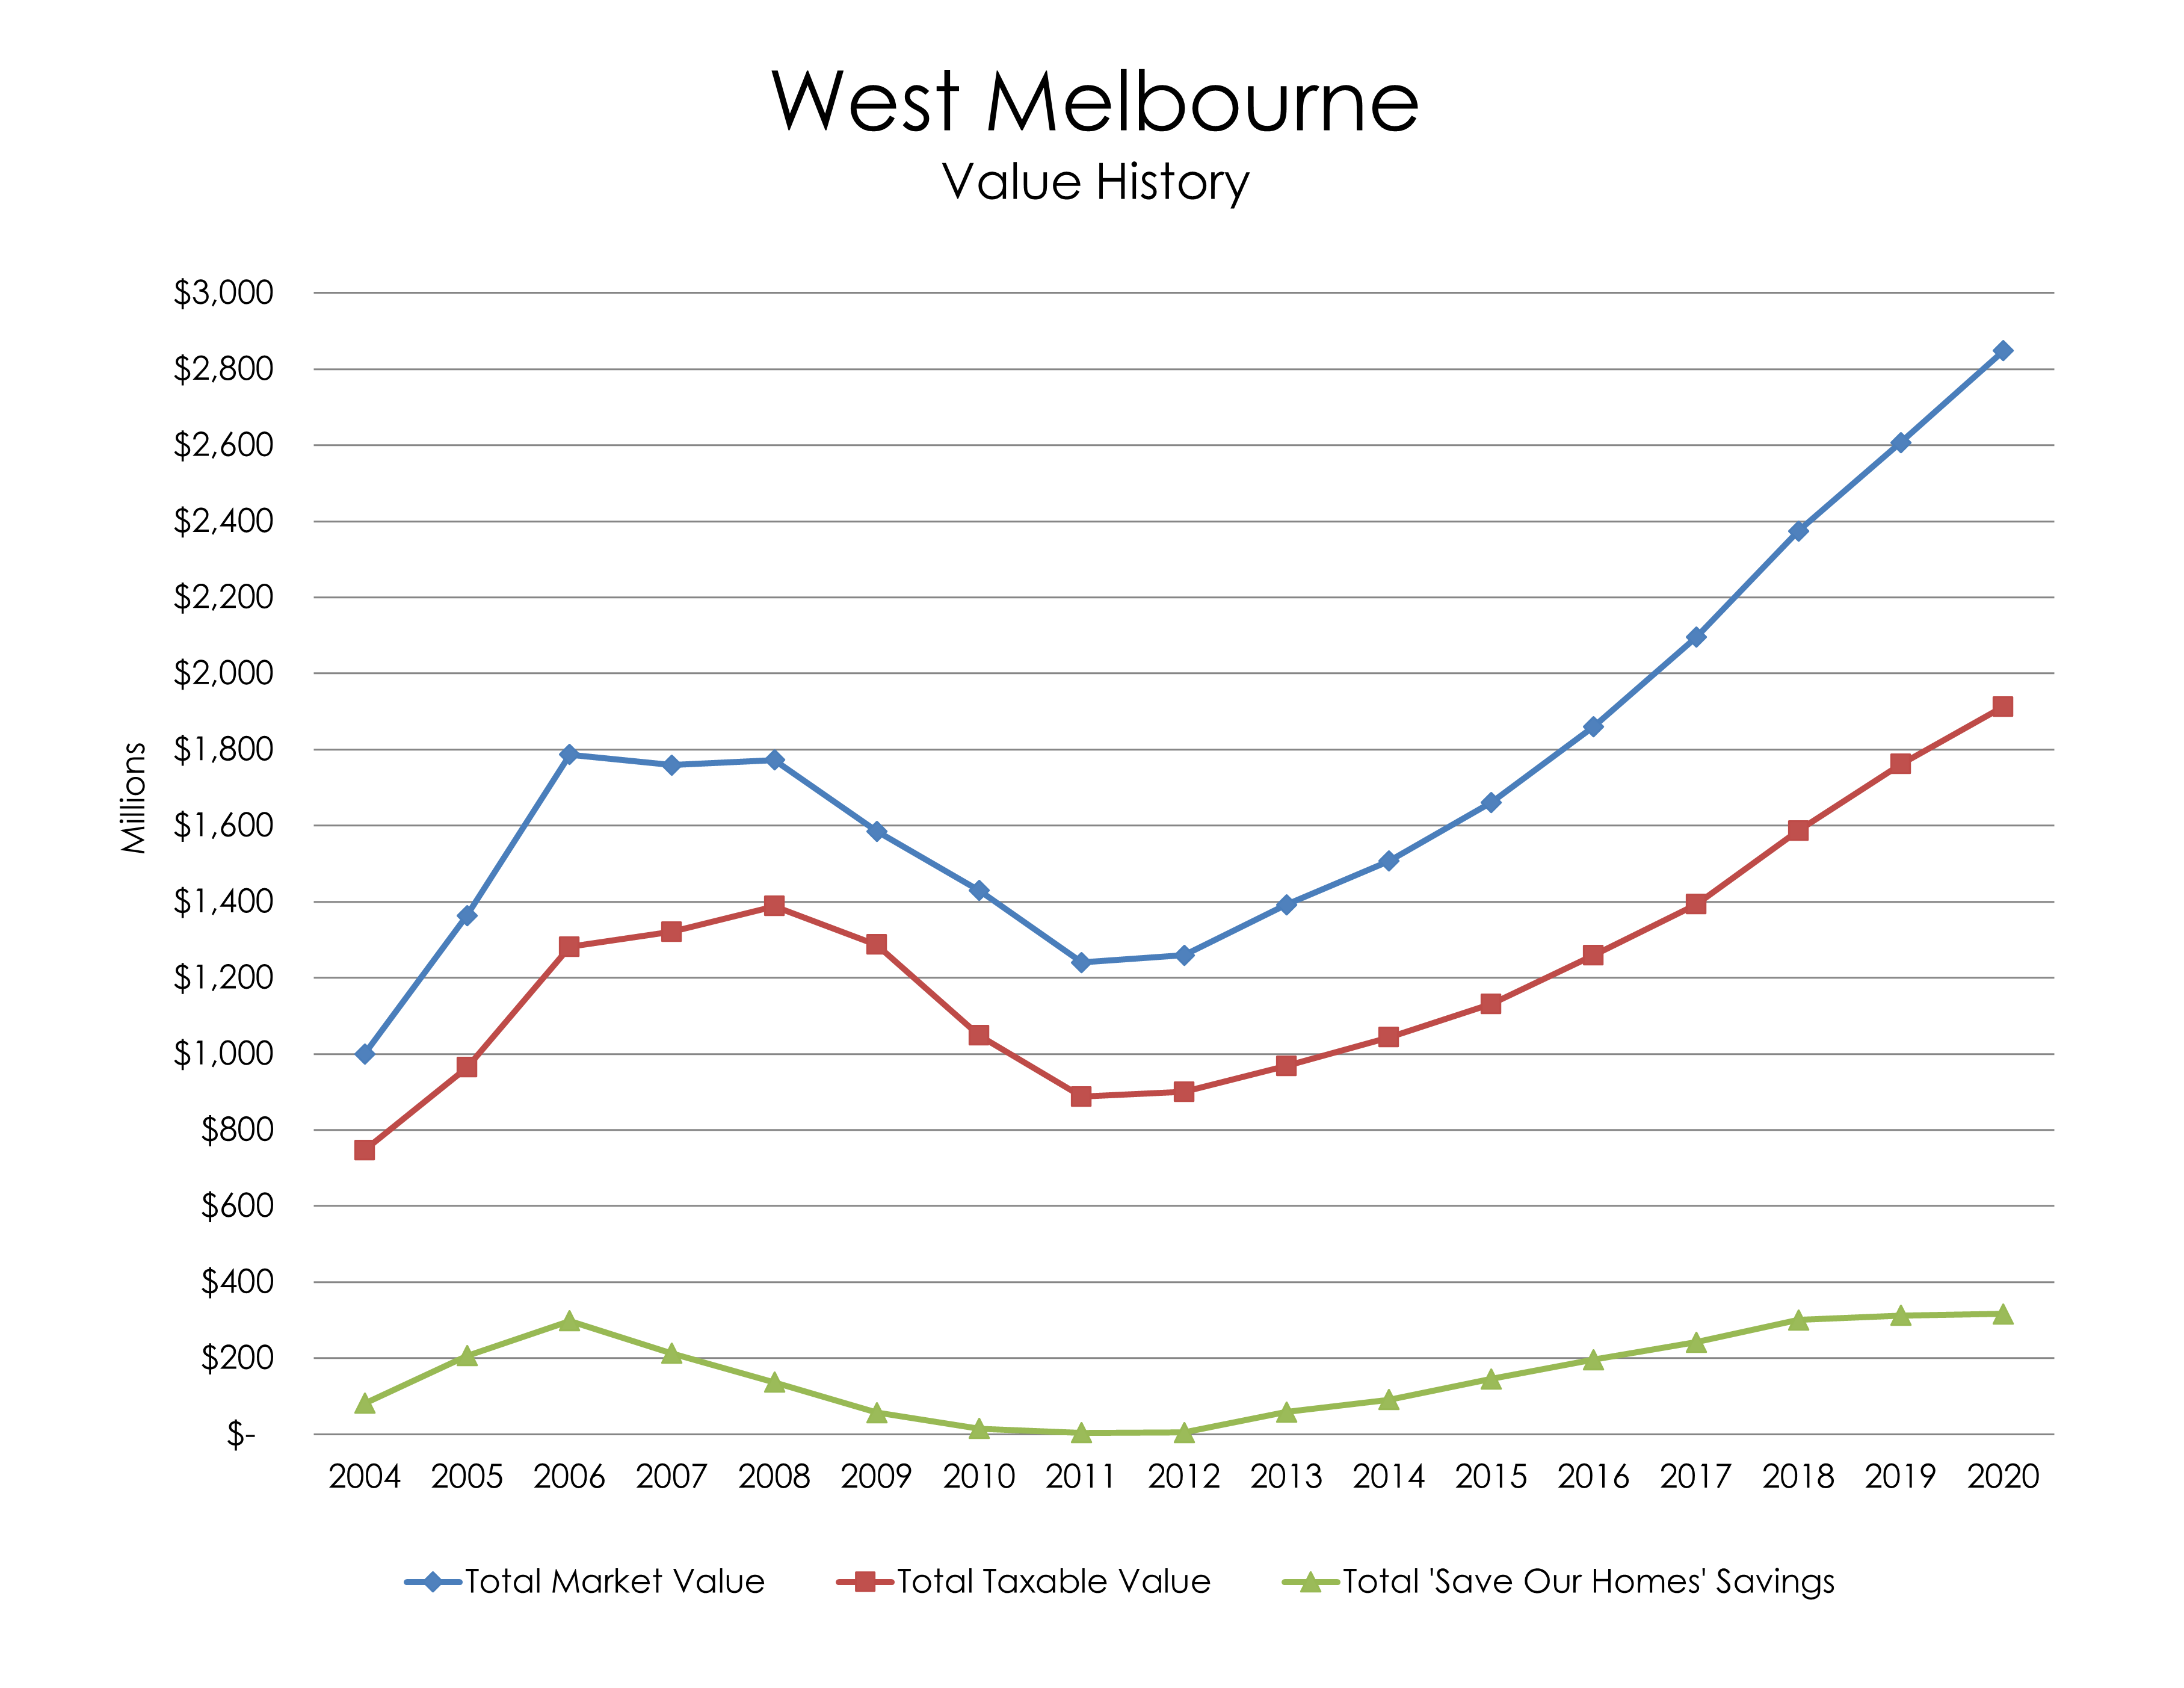 Chart: West Melbourne Value History